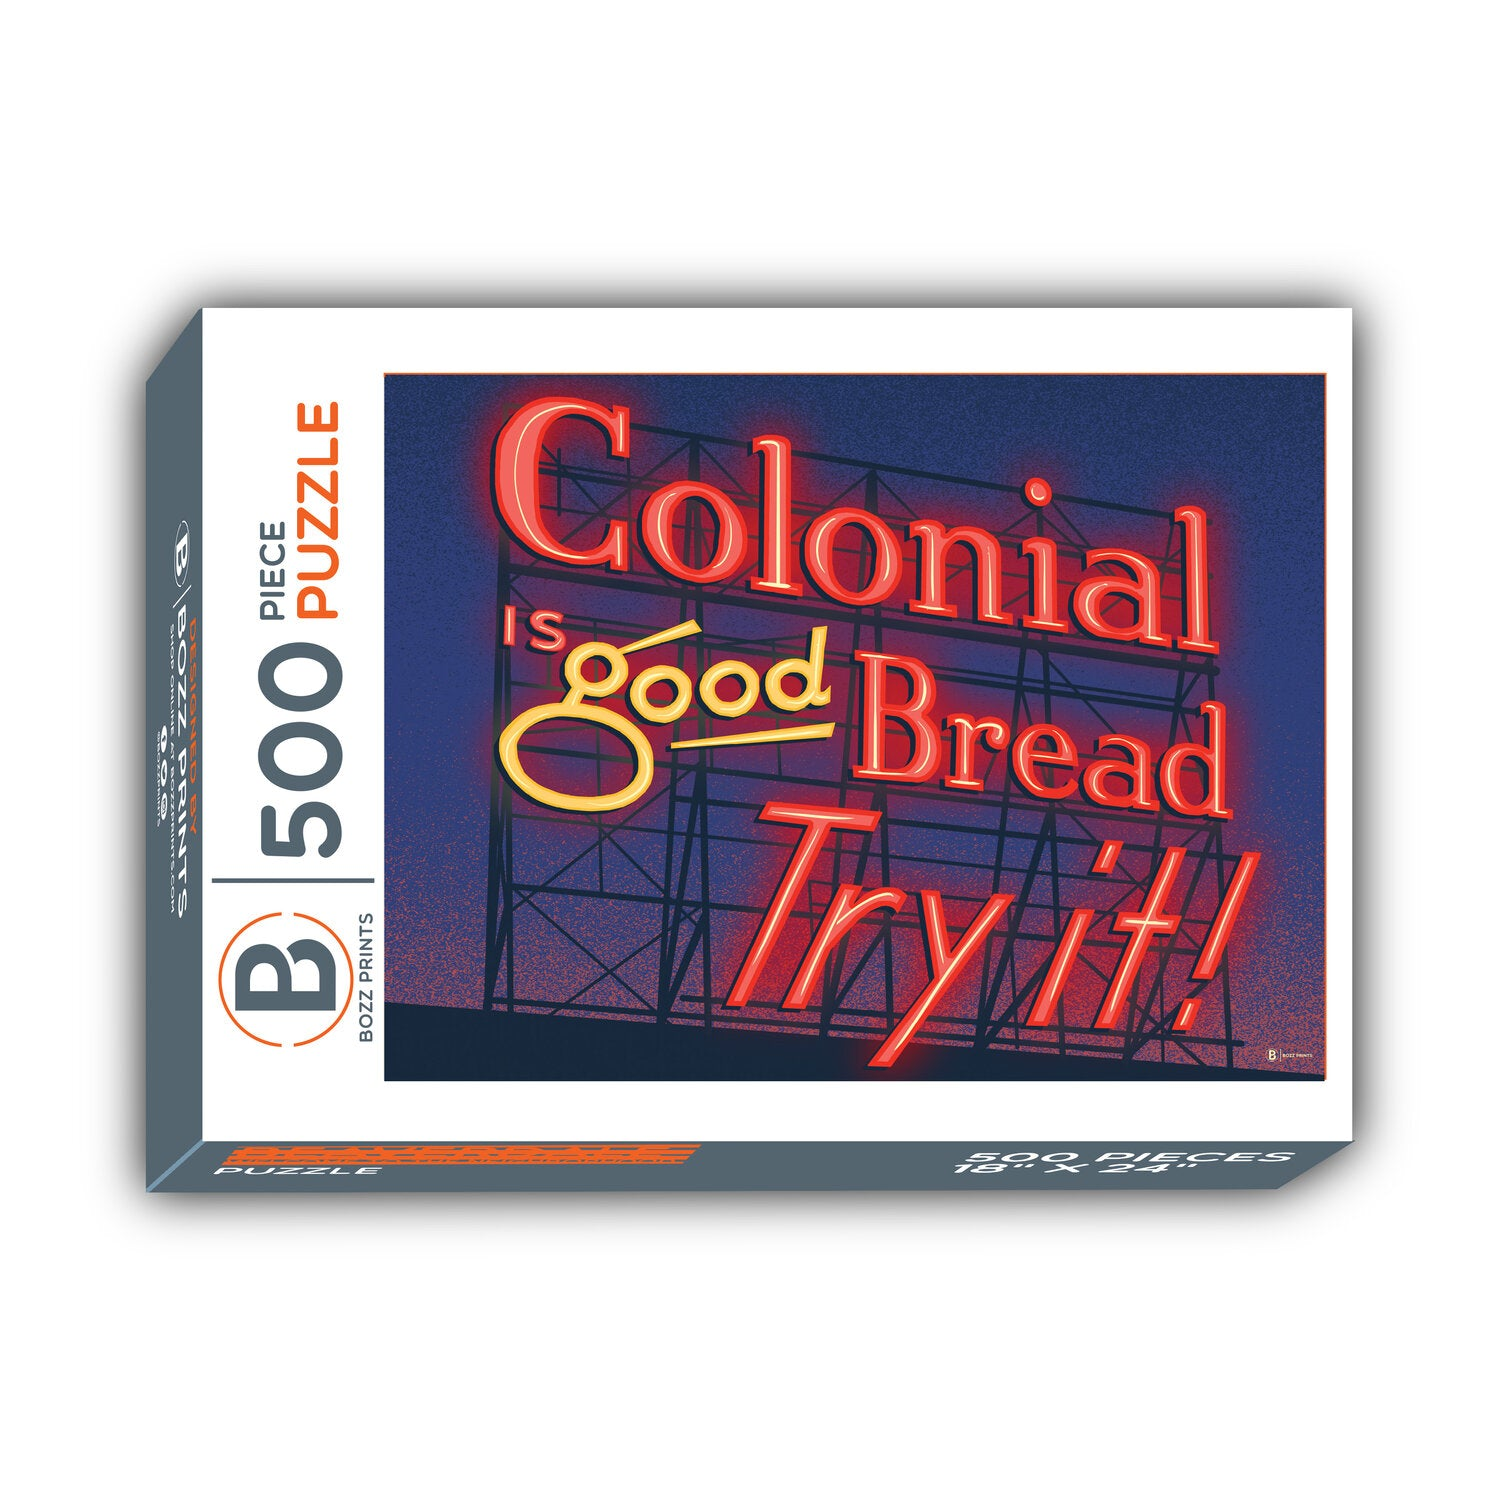 Des Moines Colonial Sign at Night Jigsaw Puzzle